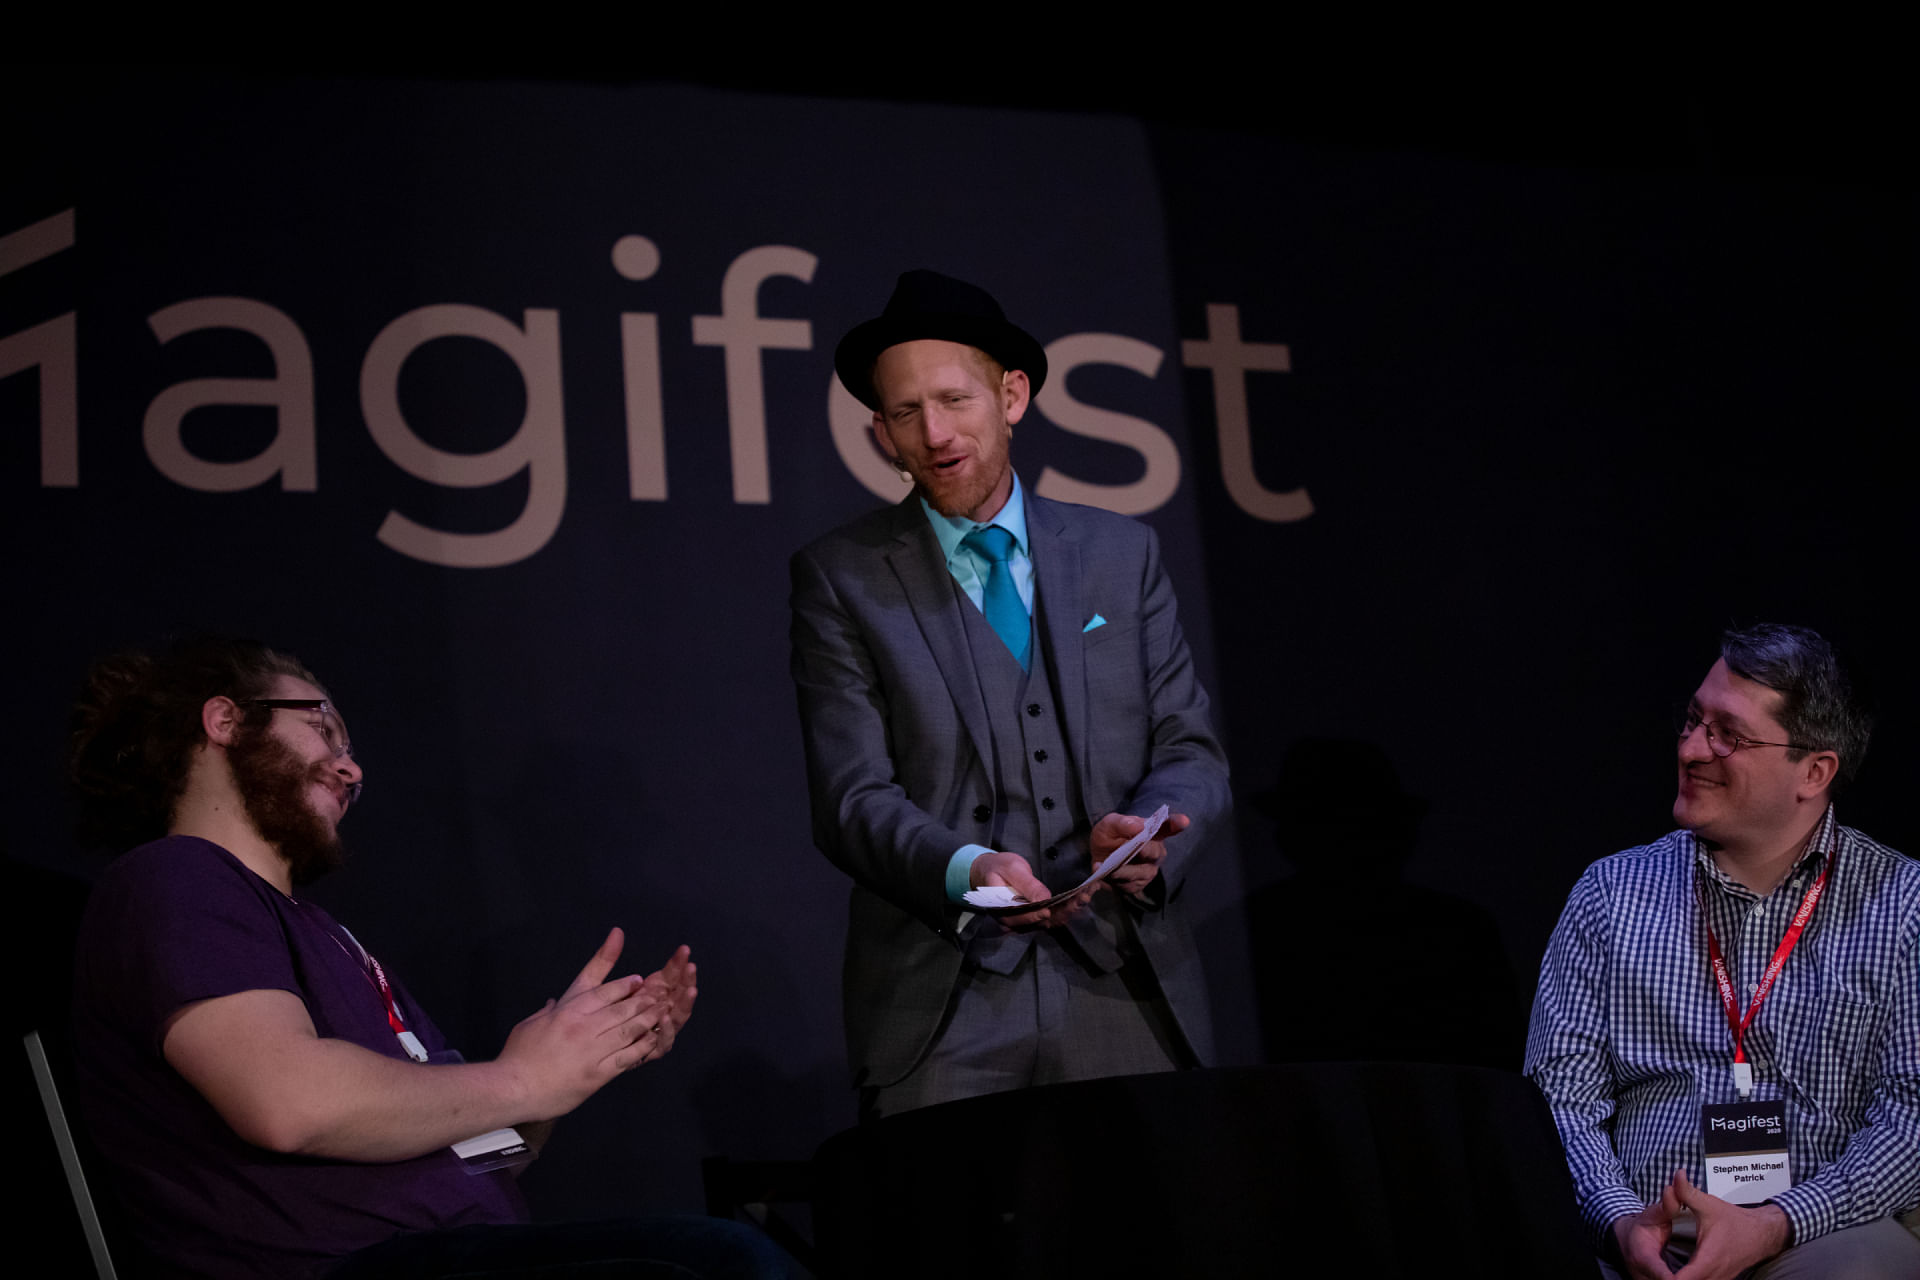 Magician in hat performs card trick on stage